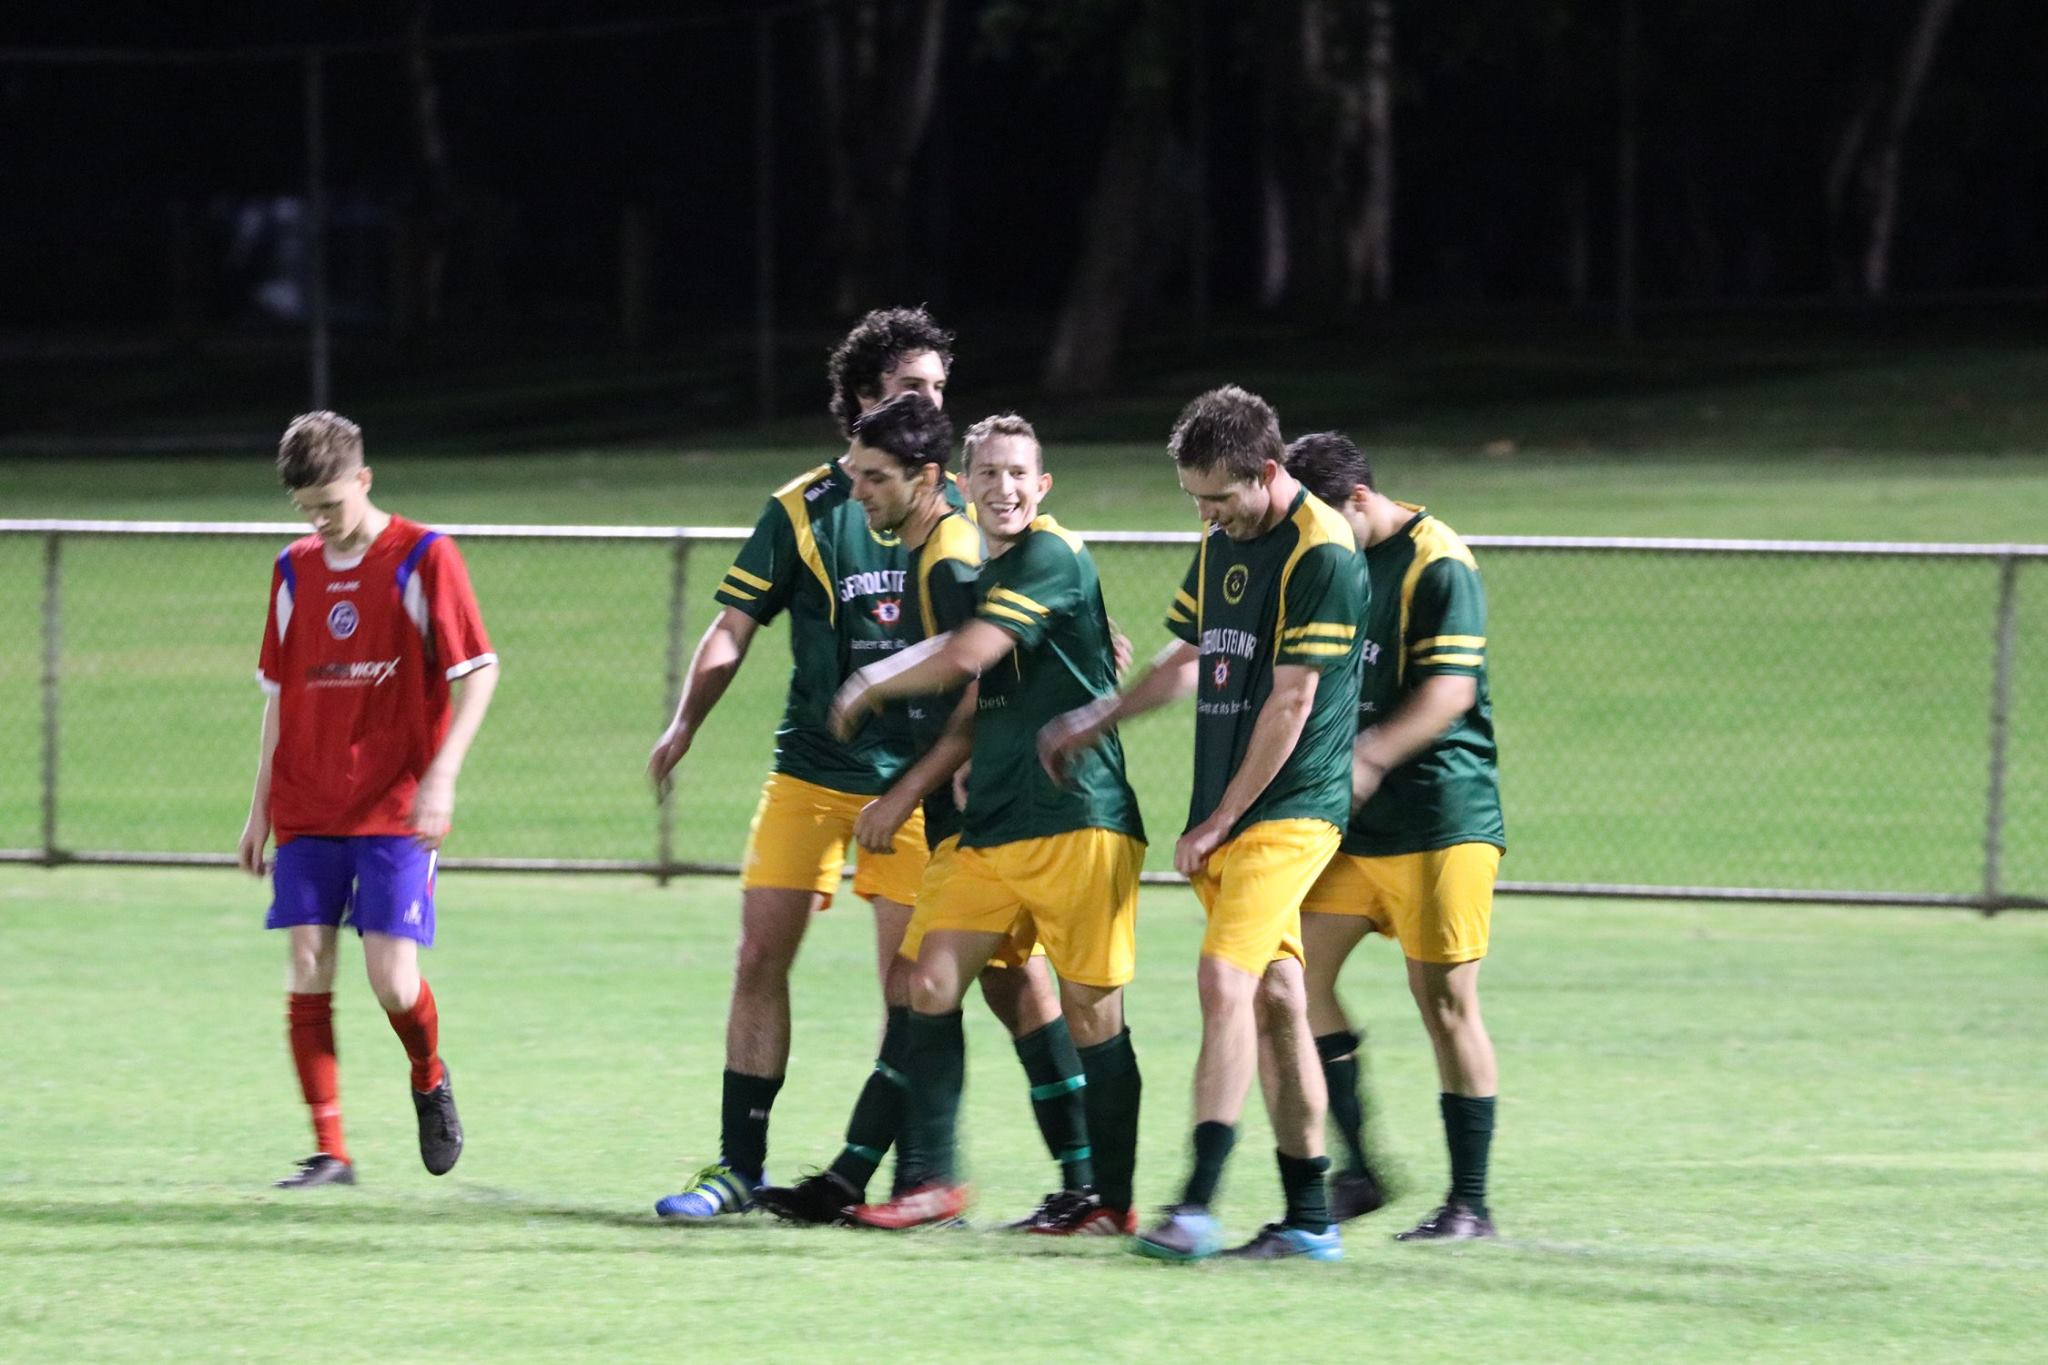 LLOYD PROUT CELEBRATES ONE OF HIS THREE GOALS AGAINST QUINNS IN THE NIGHT SERIES